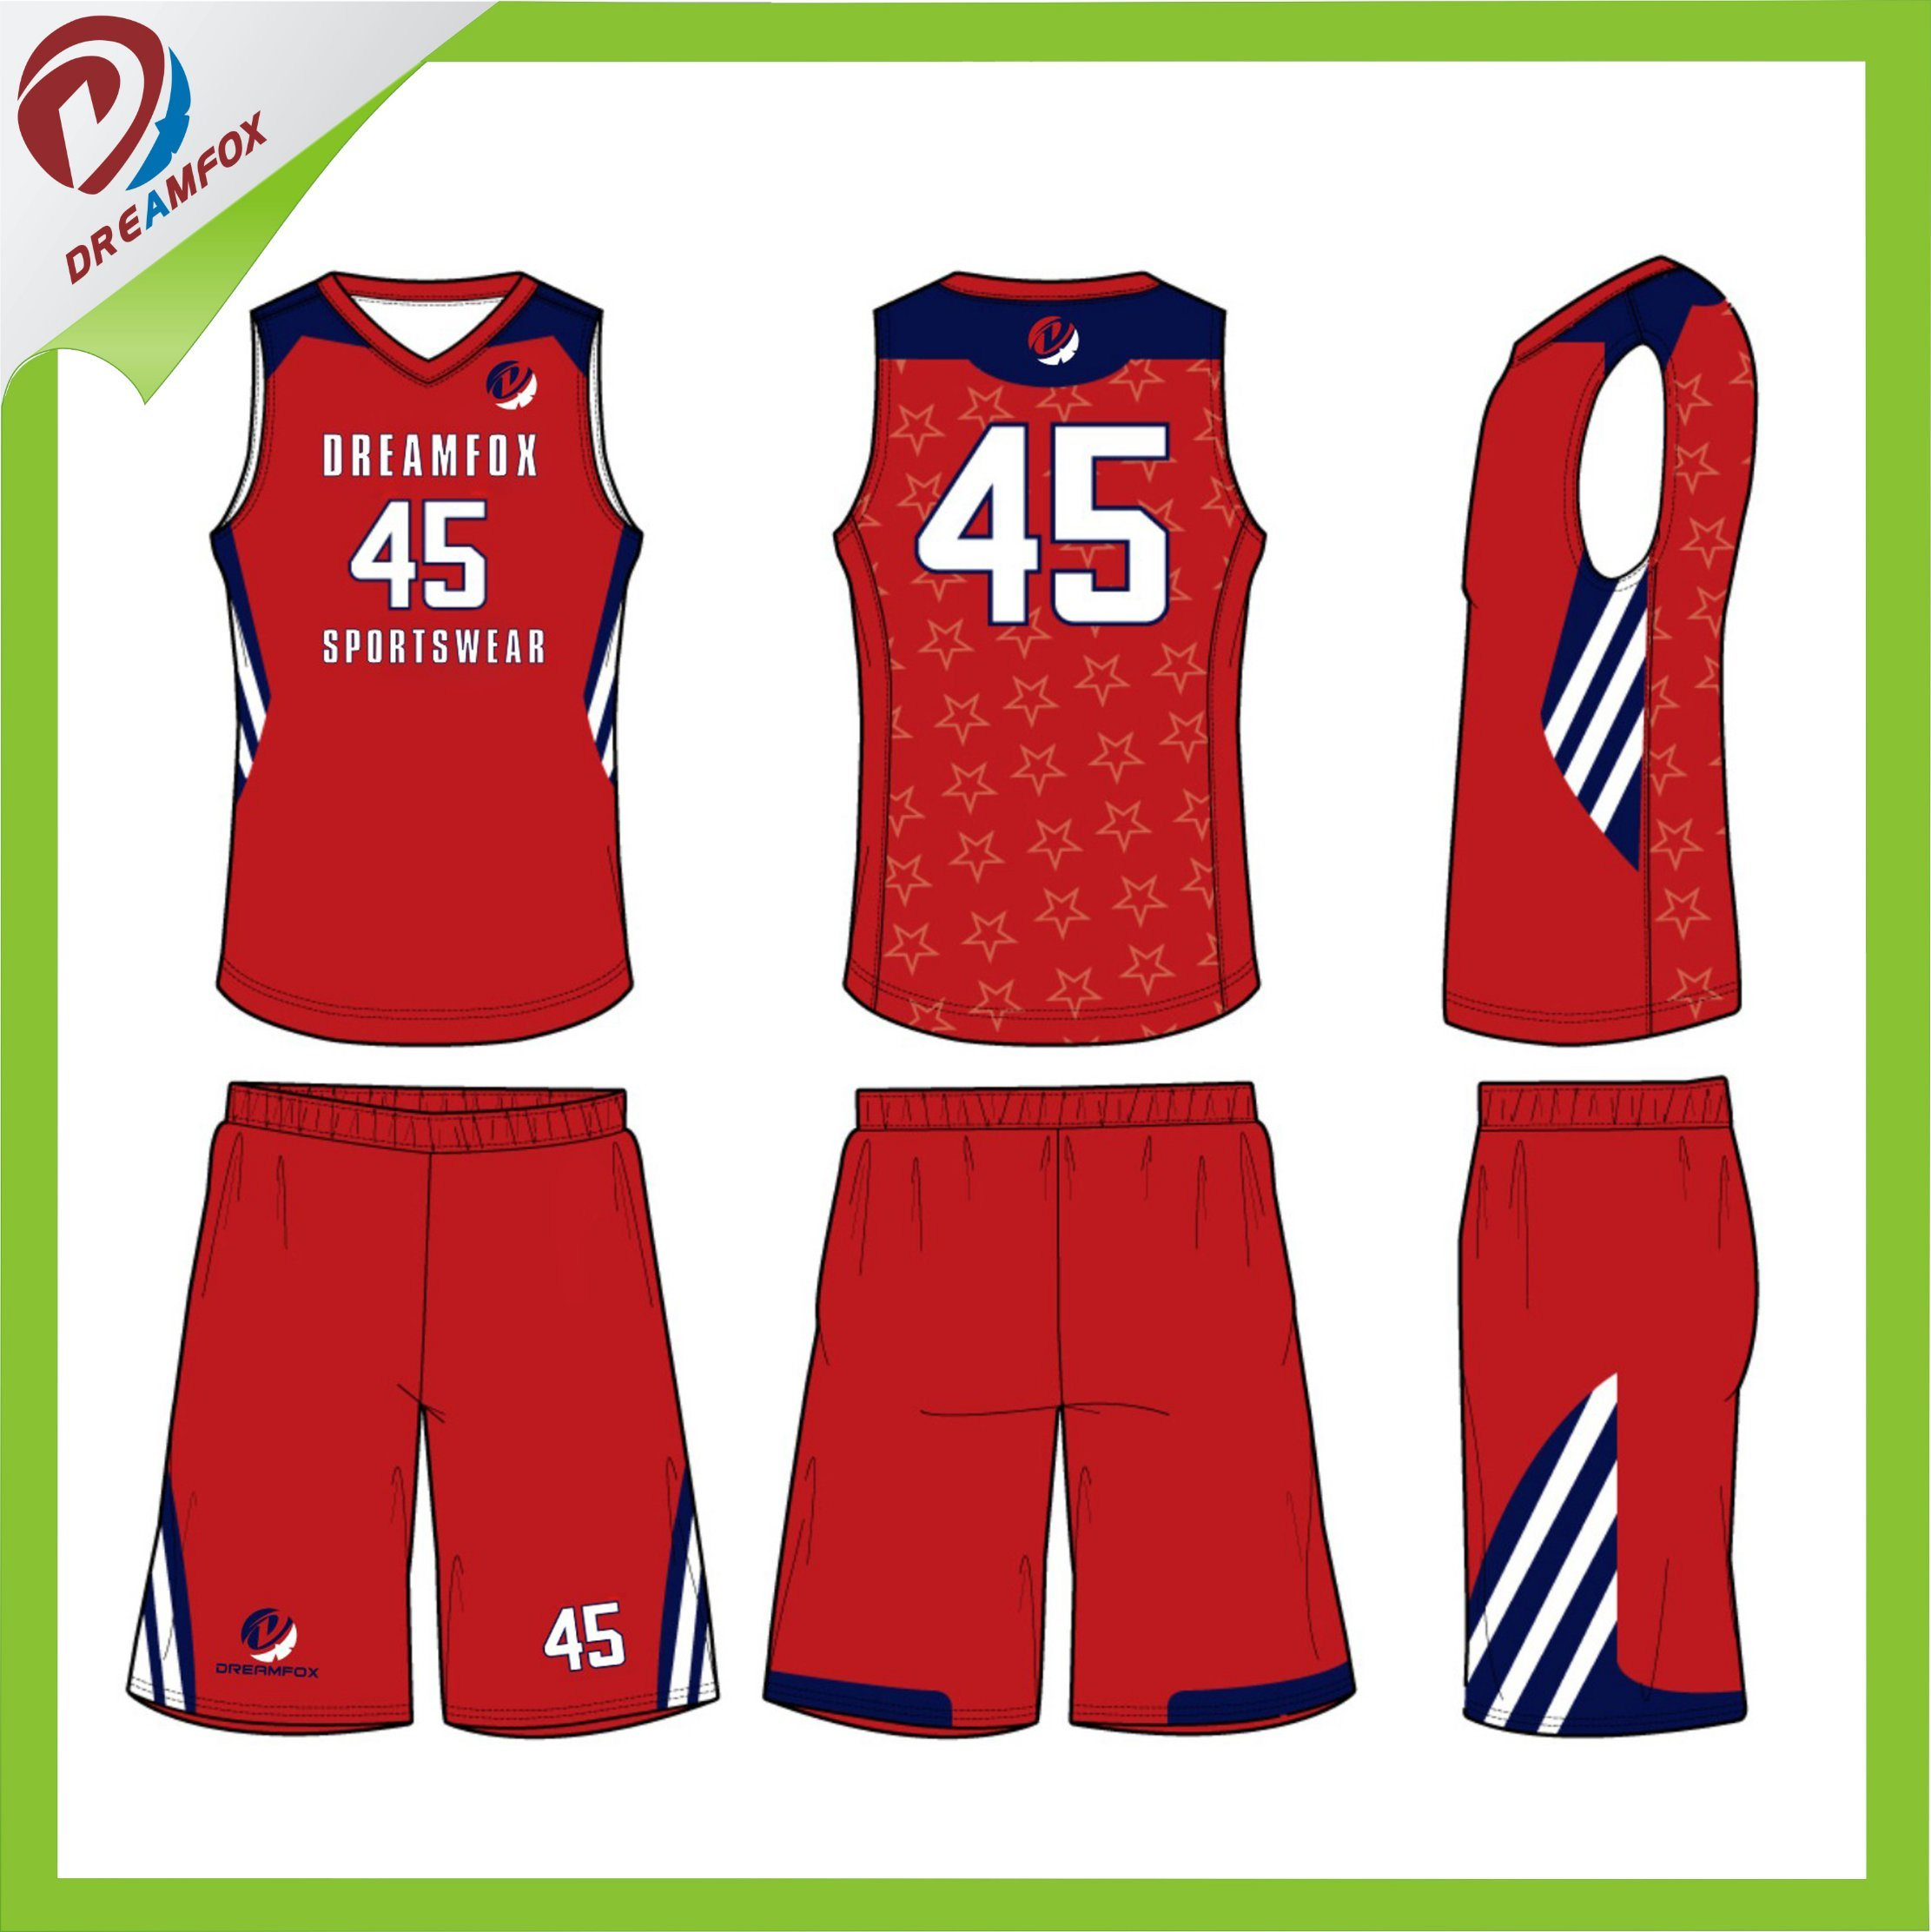 6bd89af6e China 100% Polyester Quality Custom Best Basketball Jersey Design with Full  Sublimation - China Basketball Jersey Design